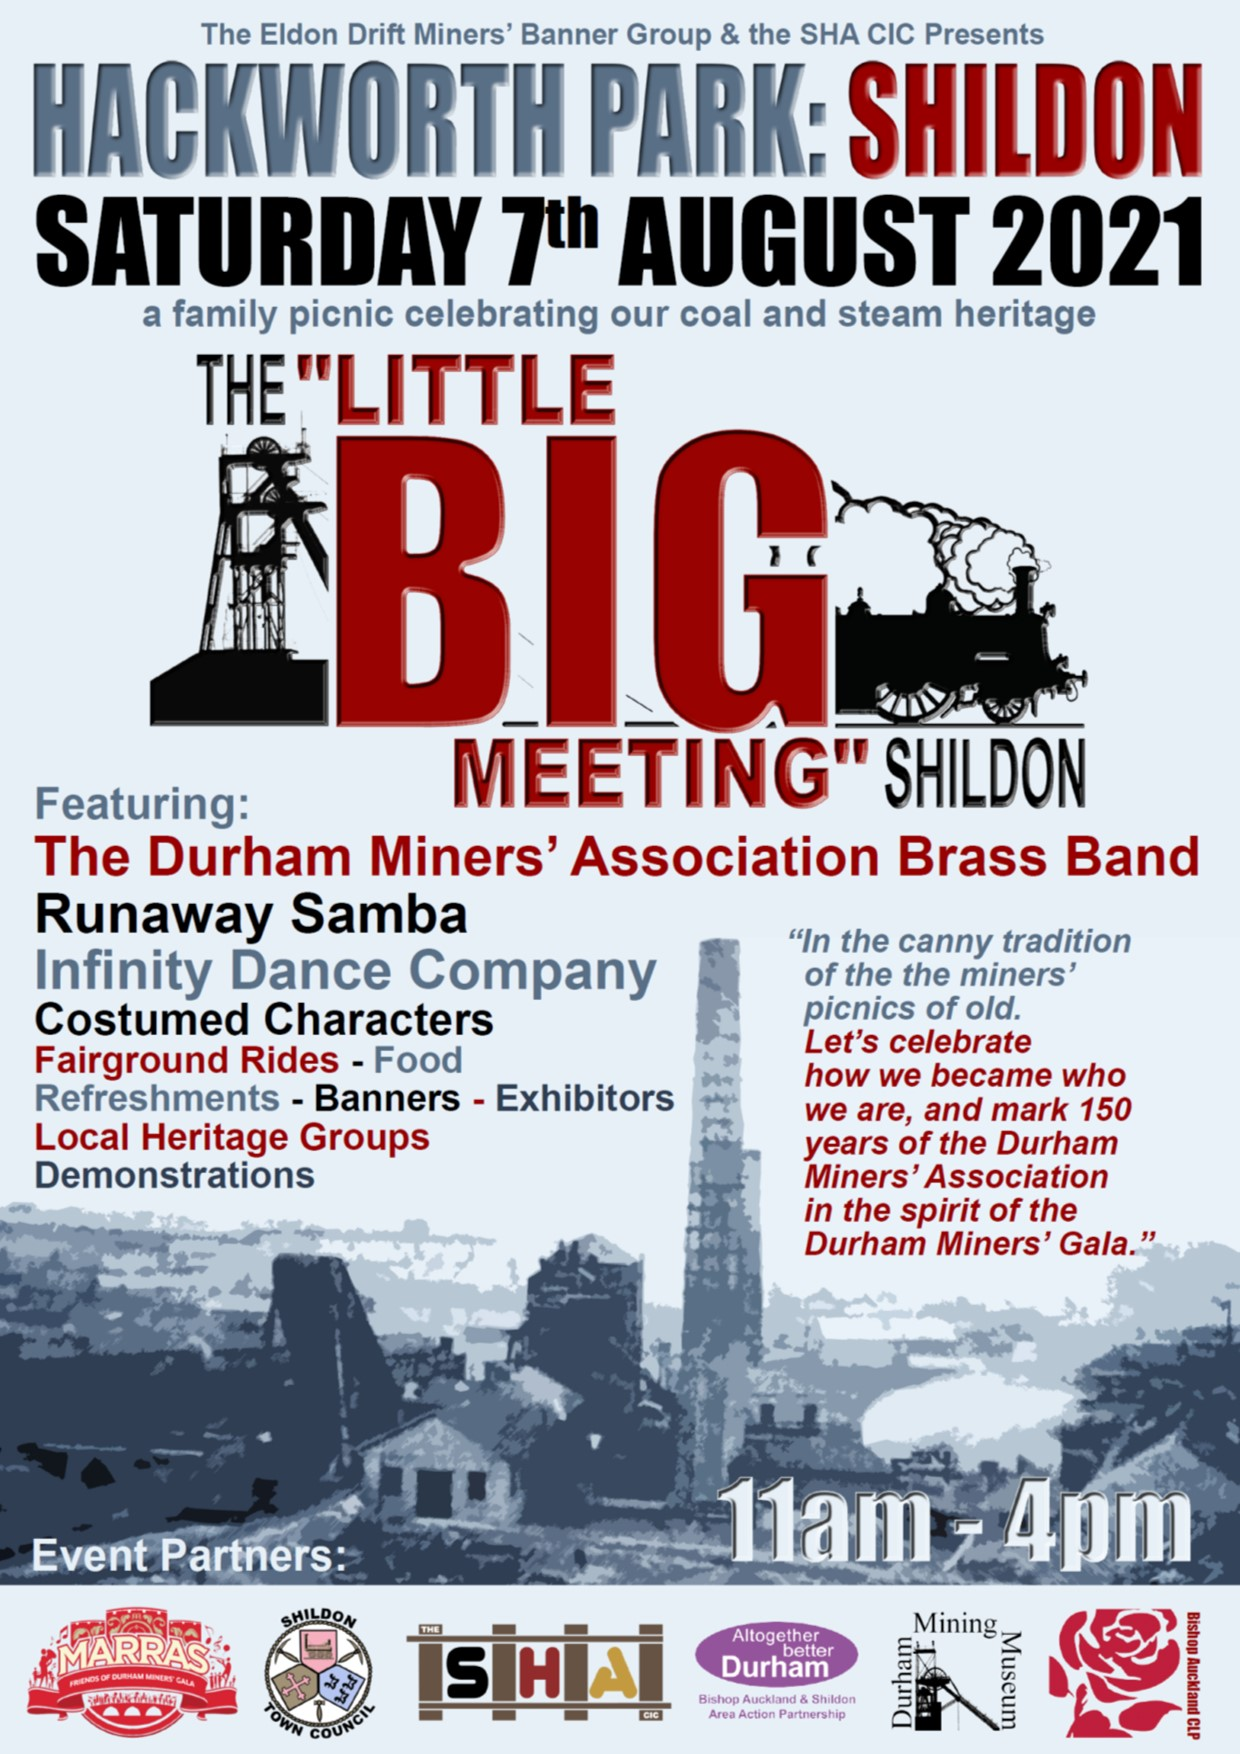 Image of Poster for the Little Big Meeting Shildon Event-Saturday 7th August 2021 11.00AM - 4.00PM